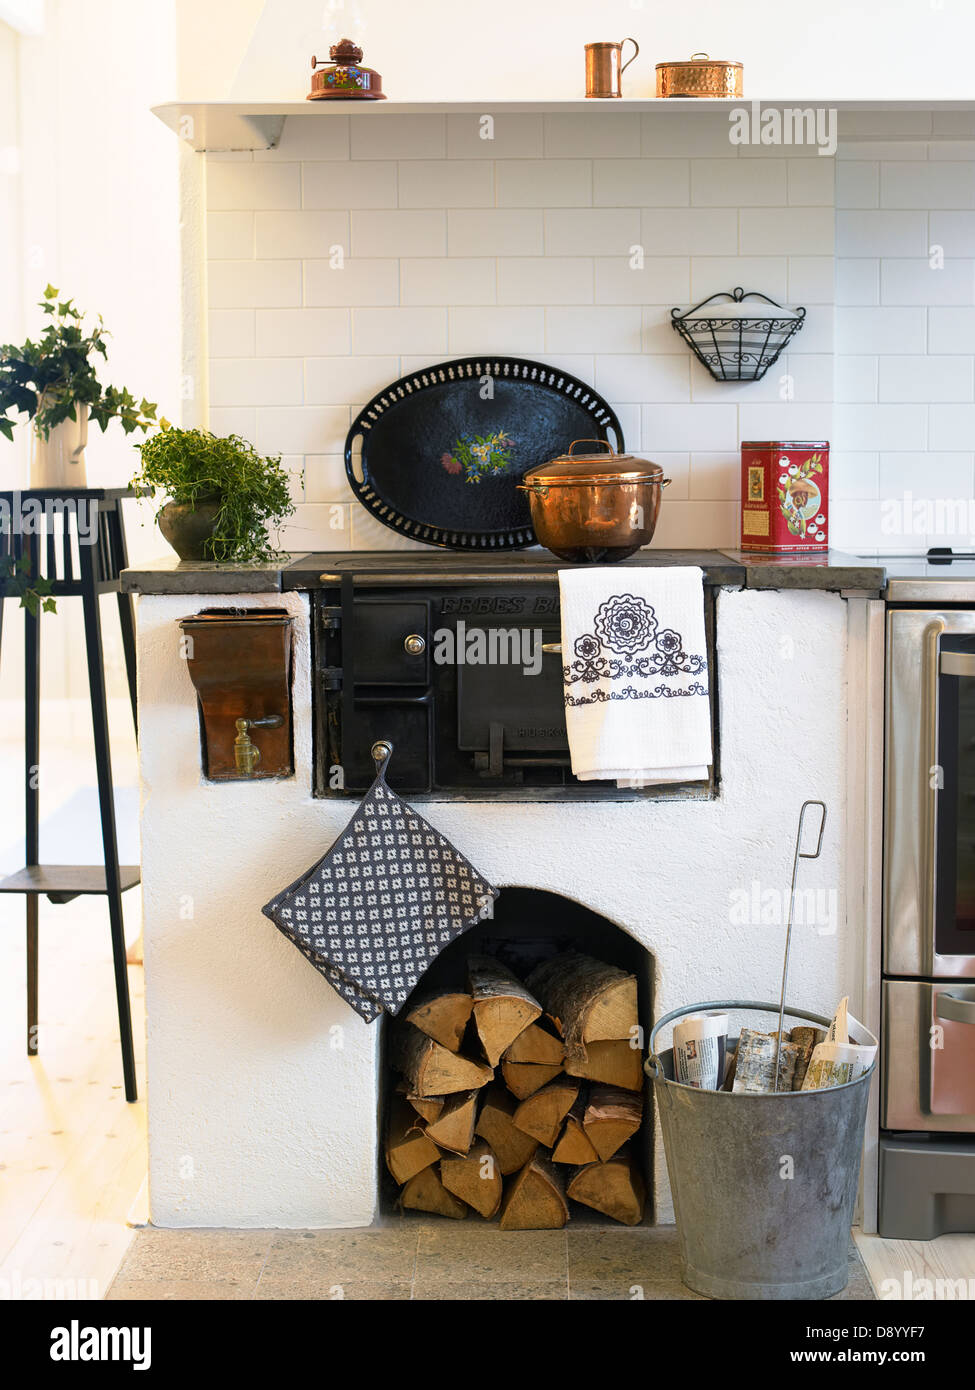 An old fashioned wood stove in a kitchen. - Stock Image